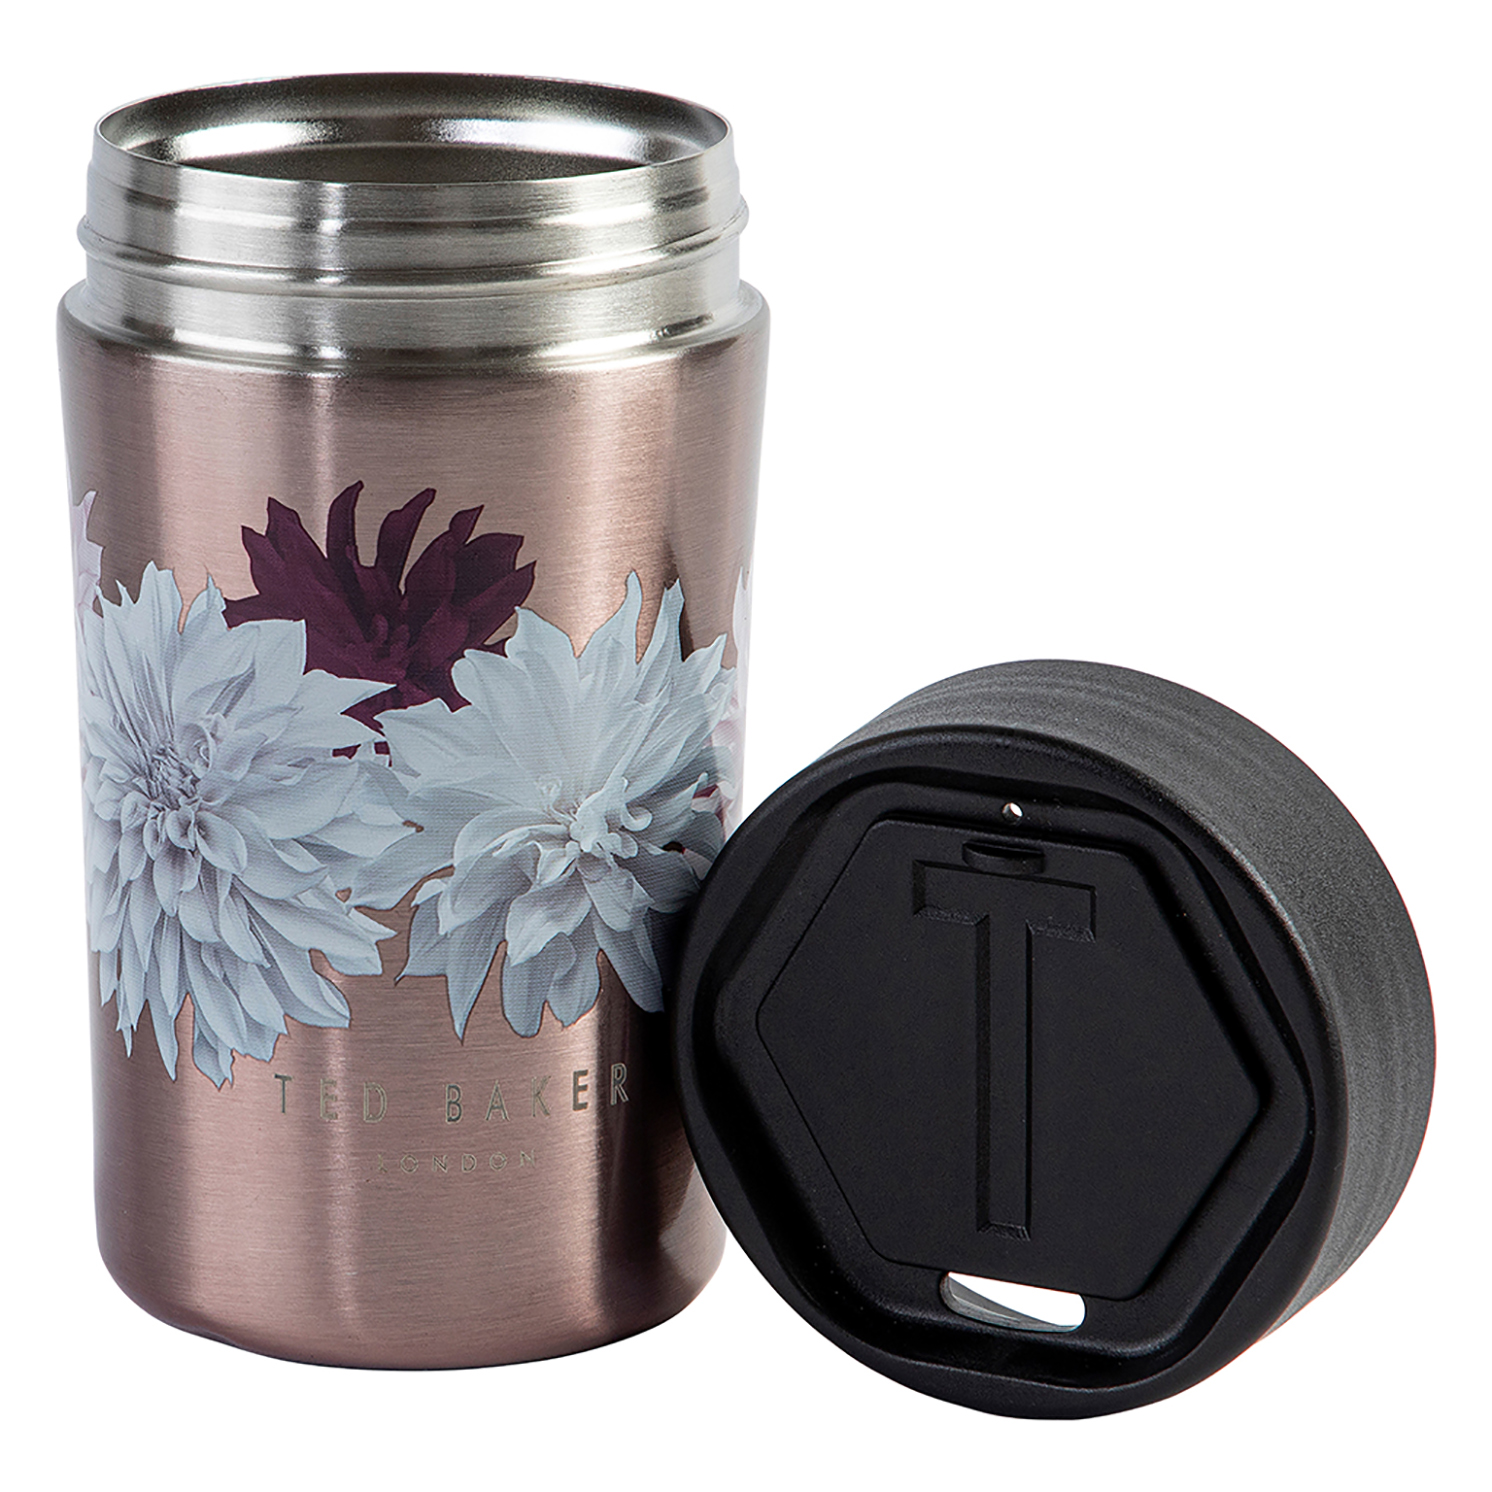 Ted Baker – Rose Gold Clove Stainless Steel Insulated Travel Cup/Mug